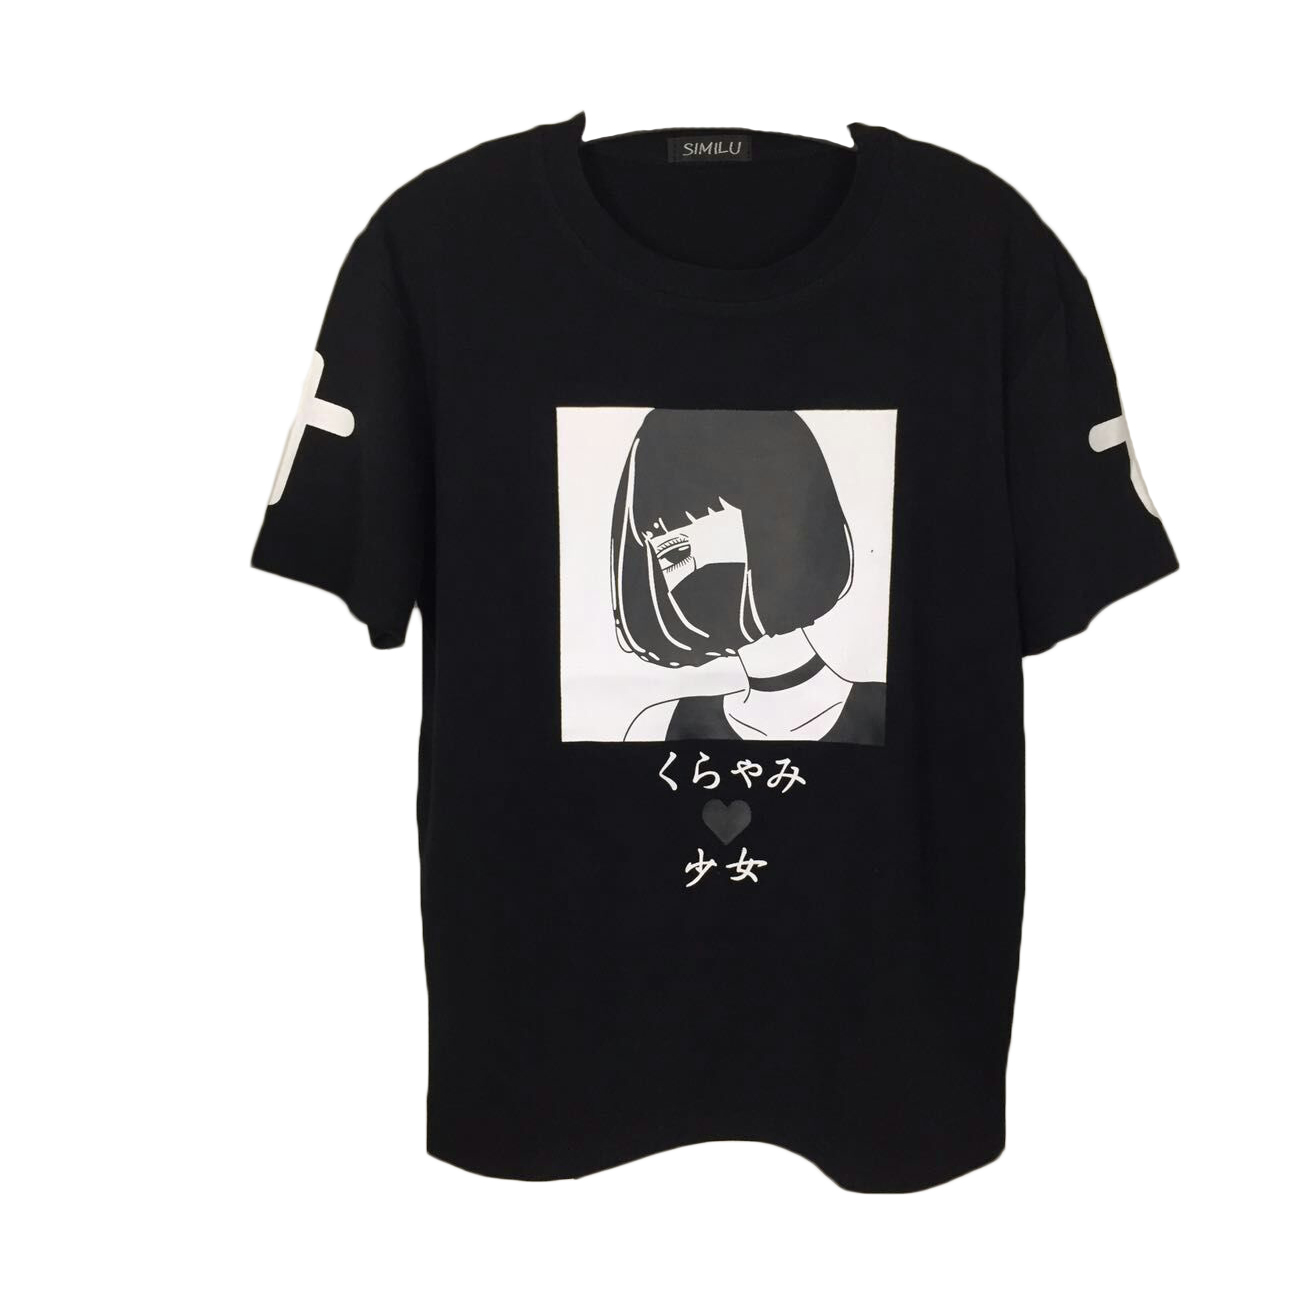 Mask Anime Shirt Japanese Tumblr Tee On Storenvy